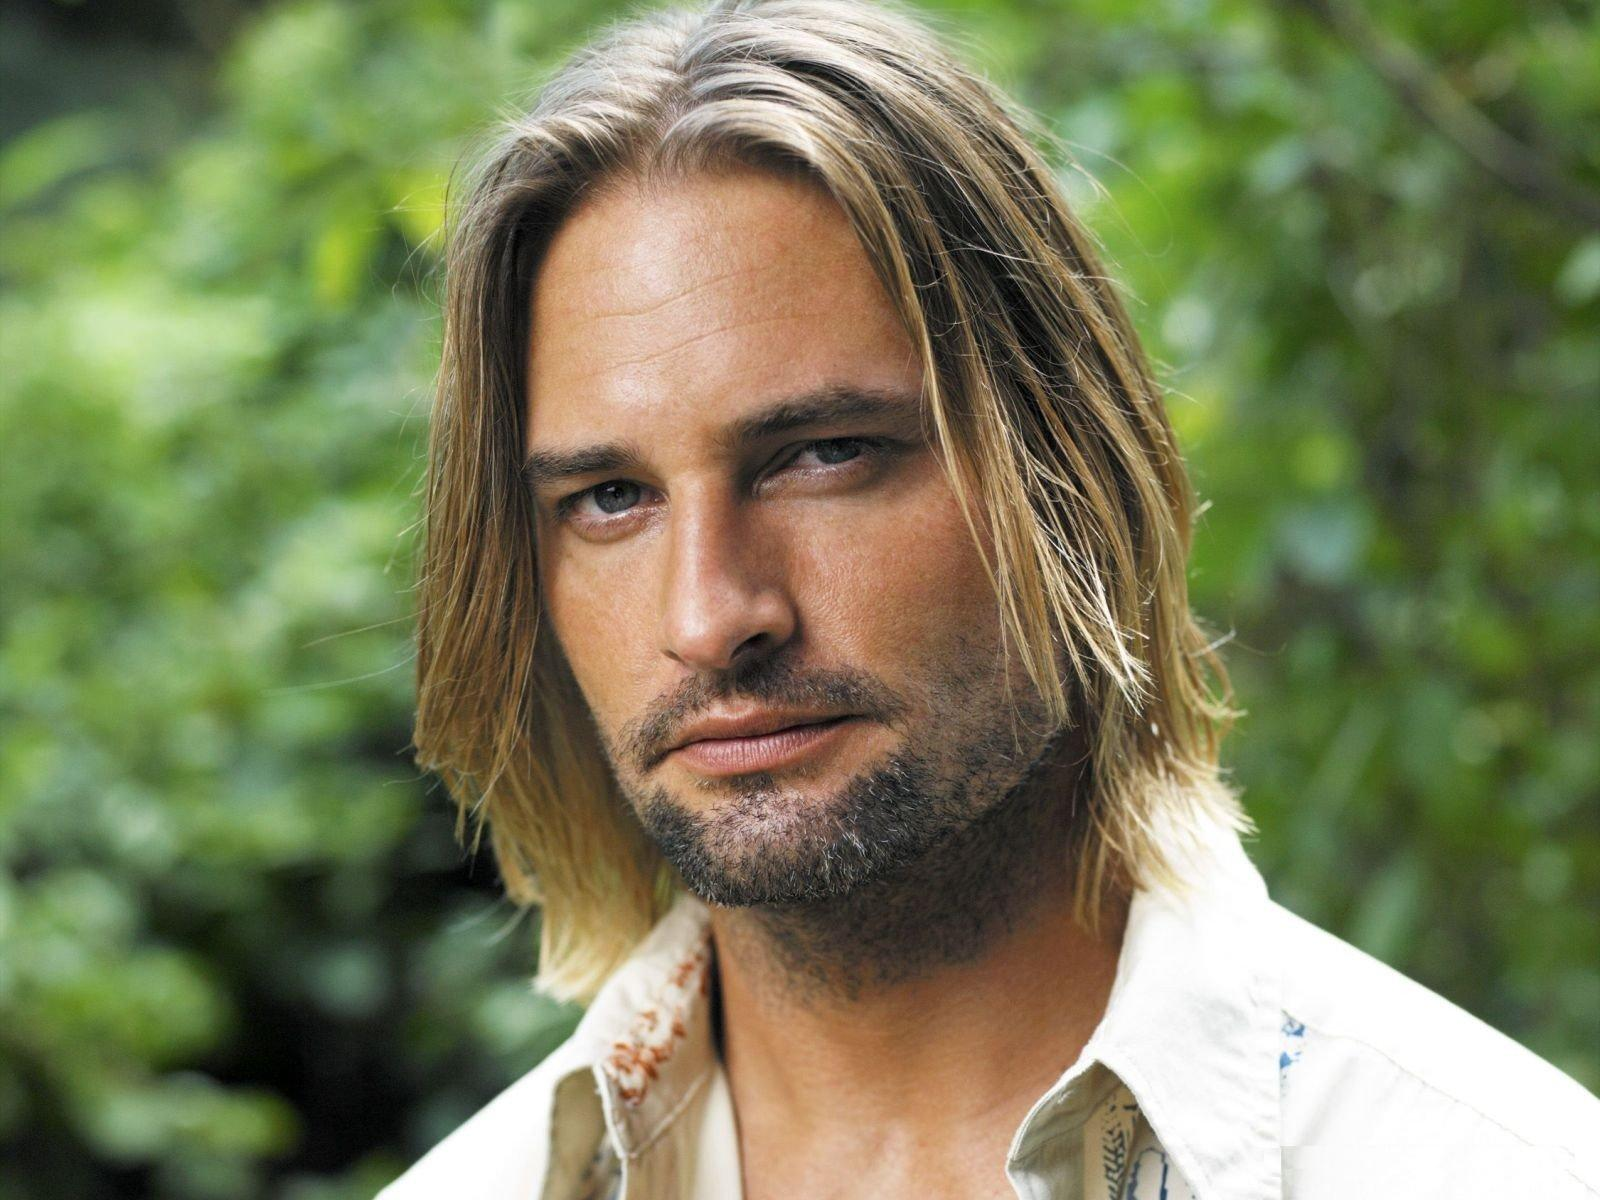 josh holloway hd wallpapers. Black Bedroom Furniture Sets. Home Design Ideas